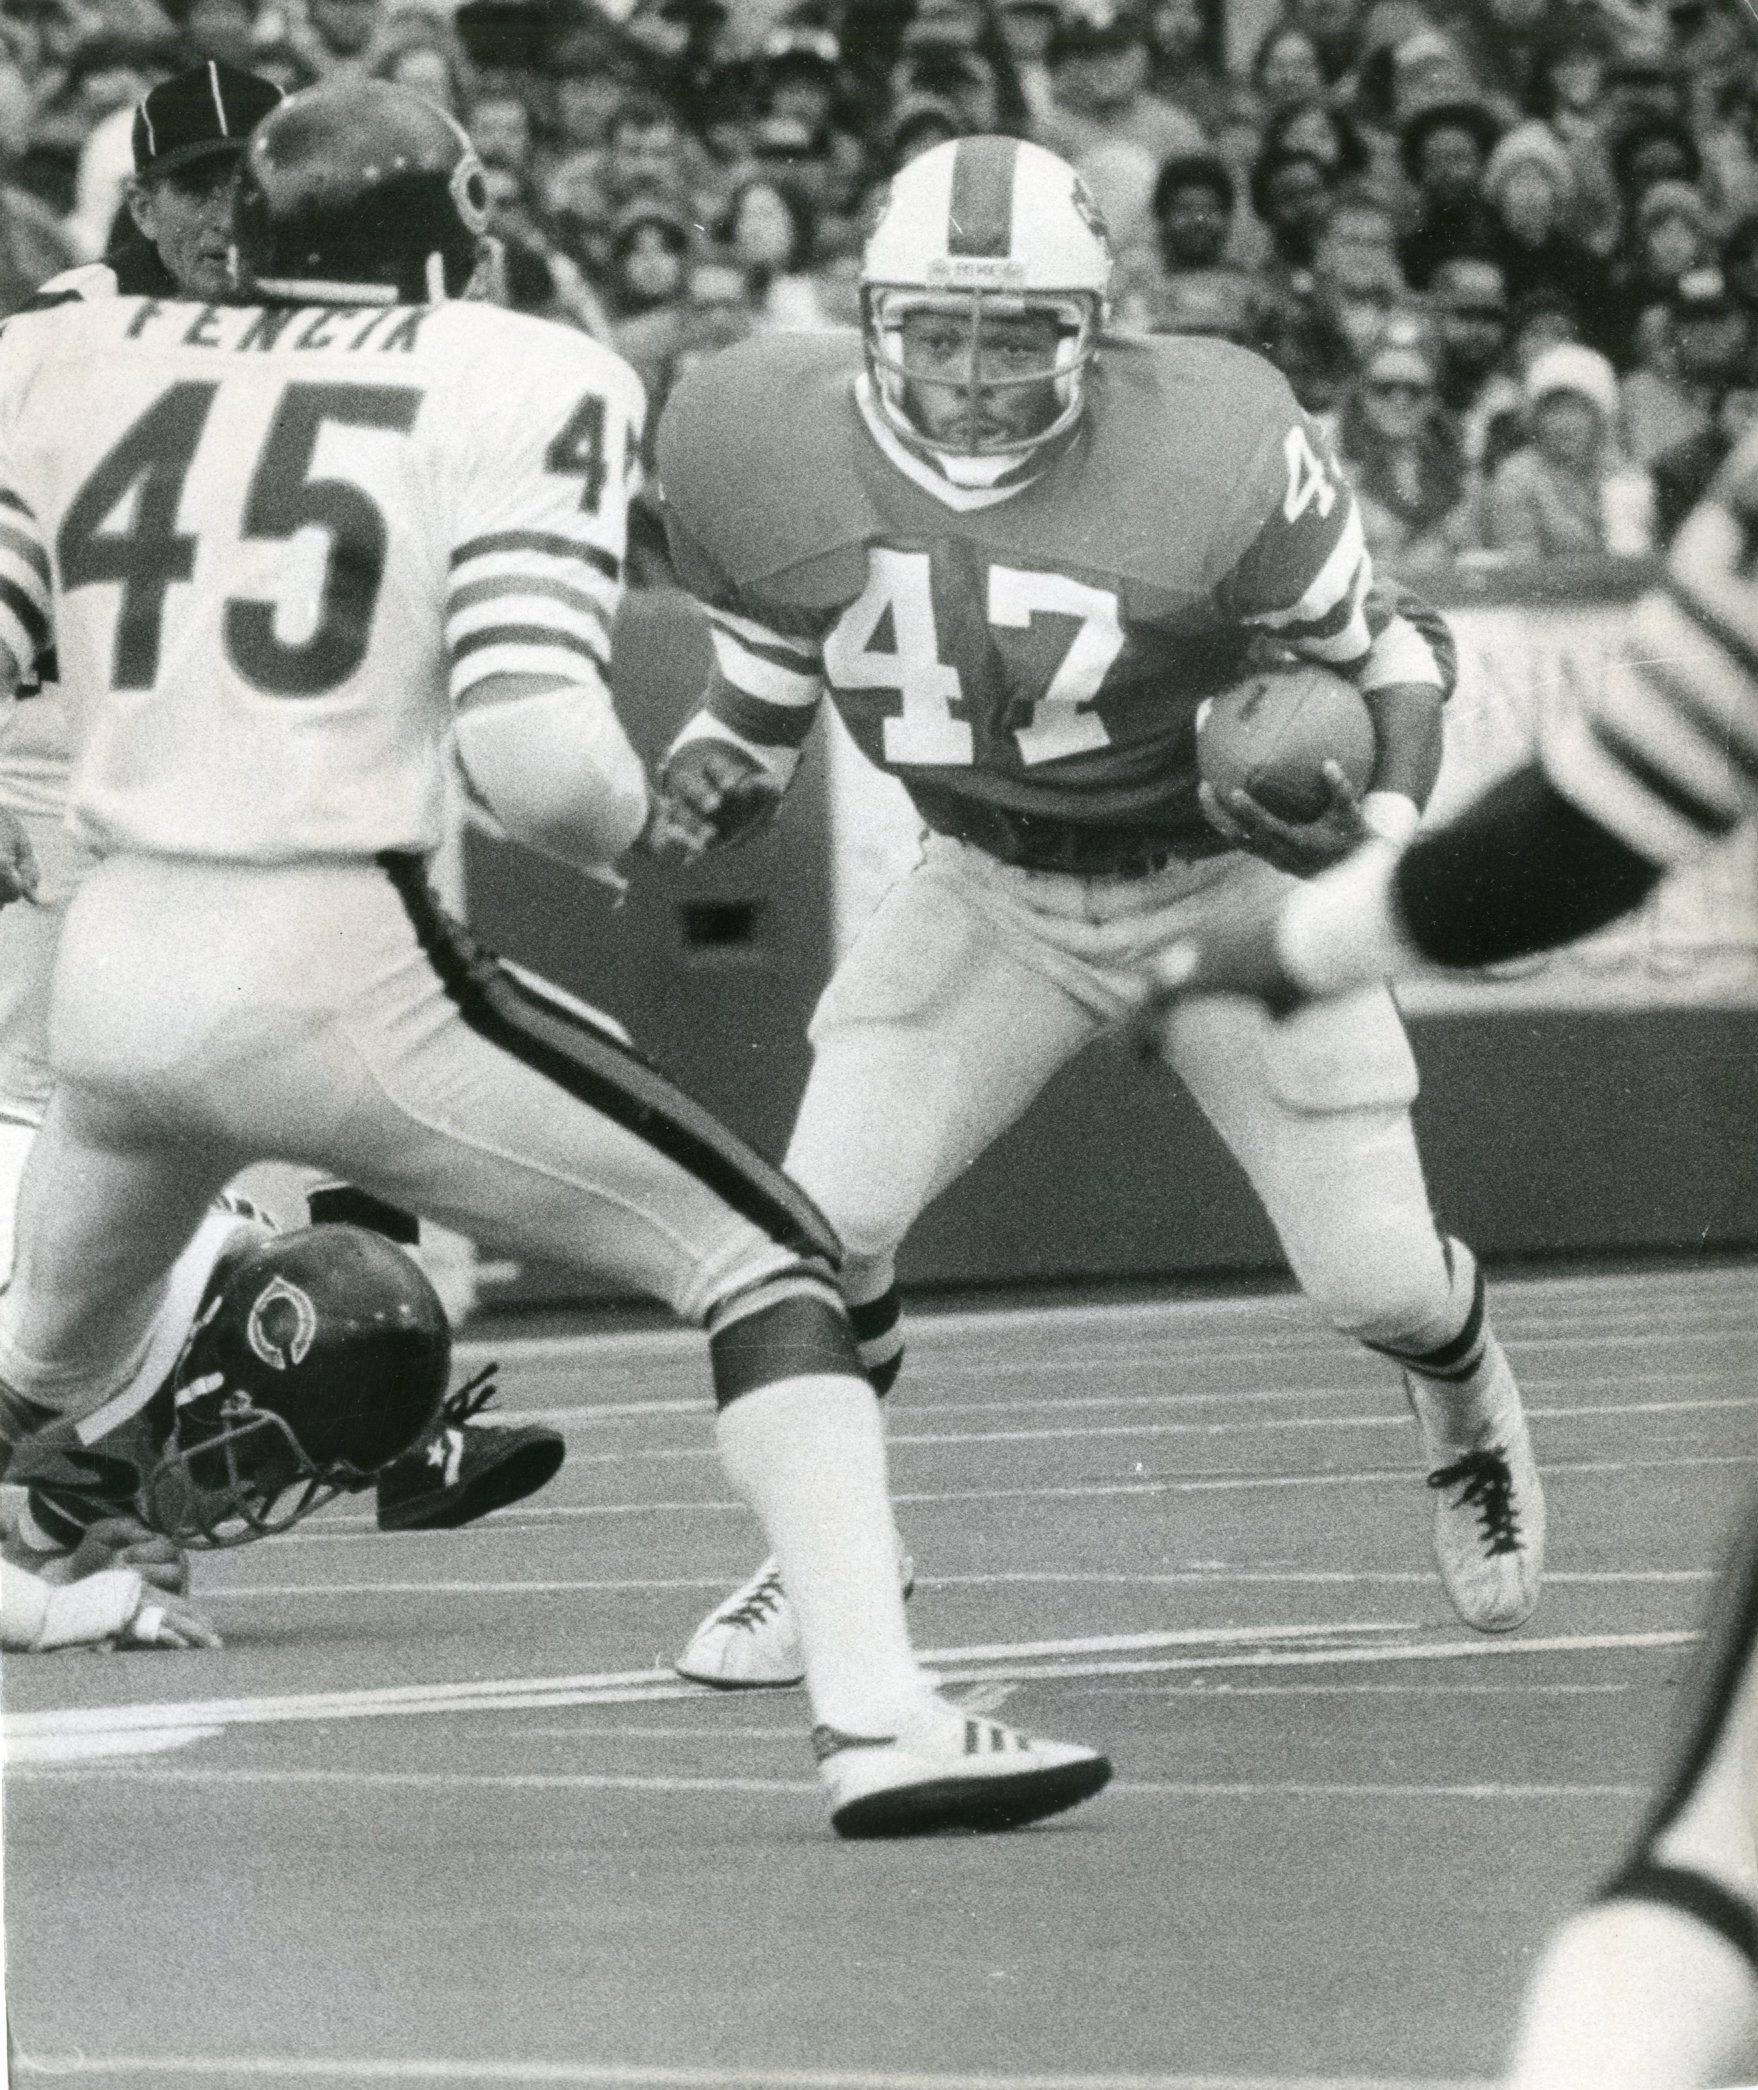 2LINE CUTLINE Curtis Brown is seen during one of his games as a Bill, this one on Oct. 7, 1979. (Buffalo News archives)